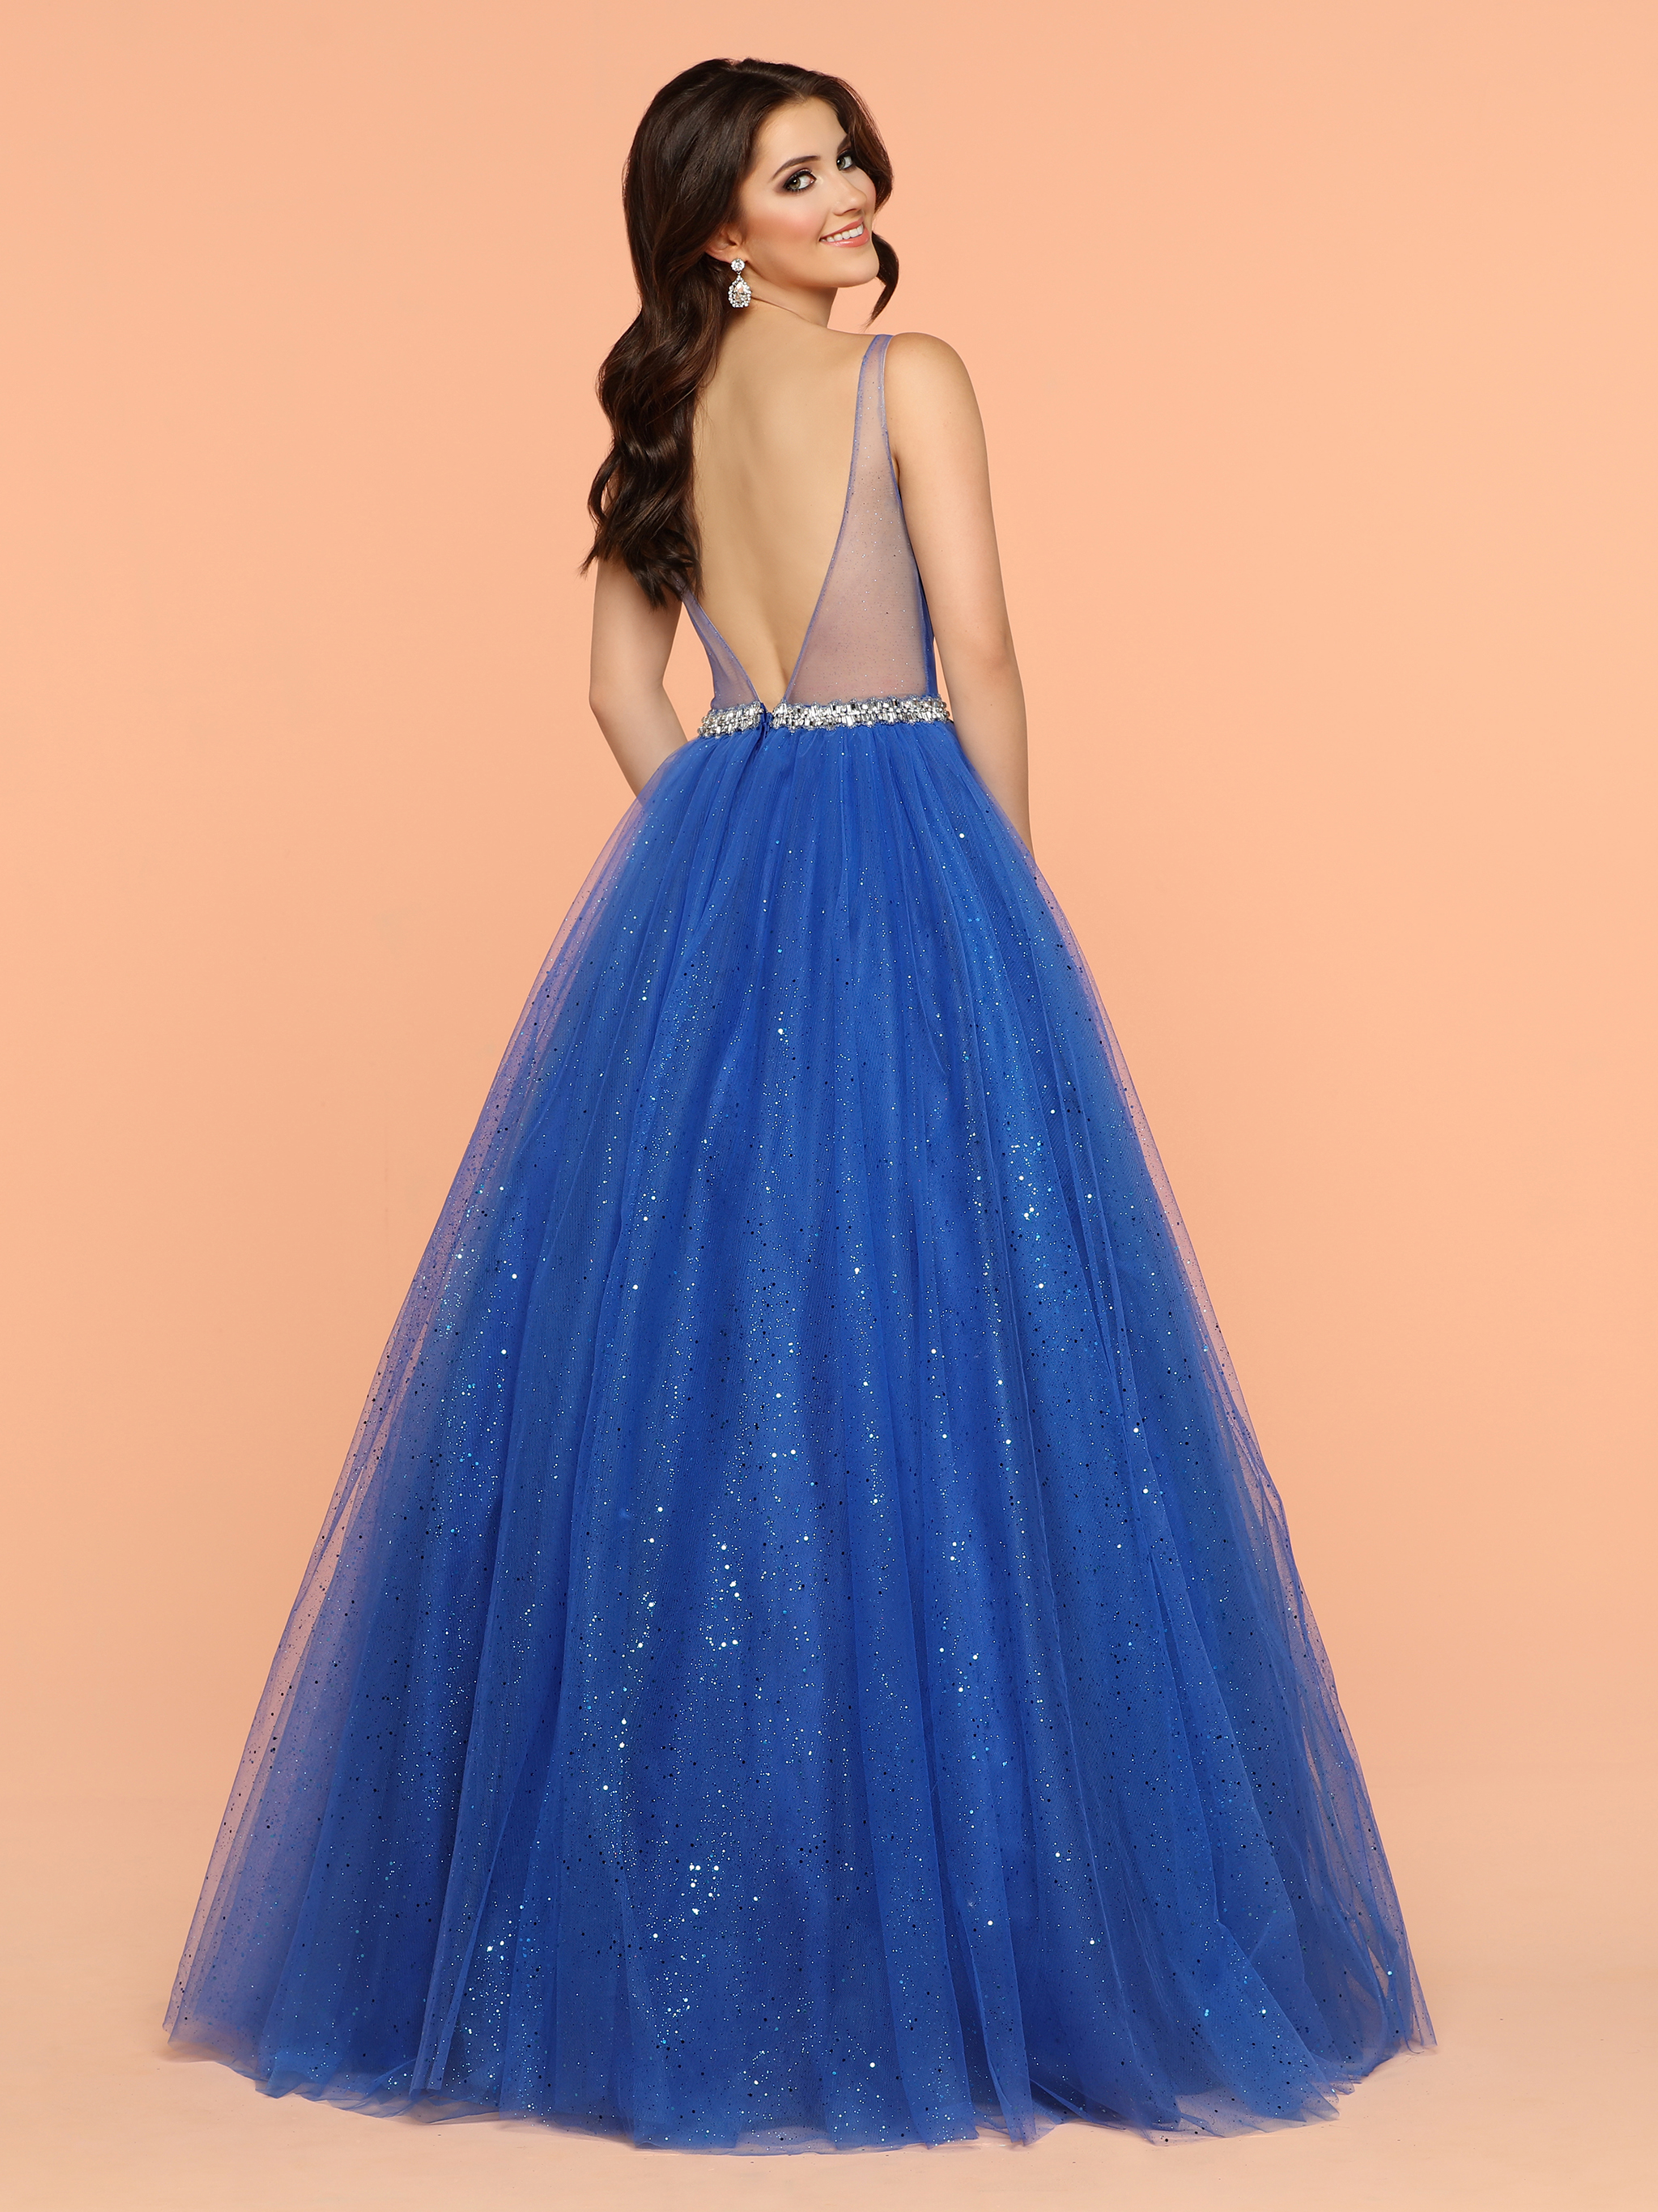 Live Your Own Fairytale: Beautiful Ball Gowns for Prom 2018 – Sparkle Prom Dresses